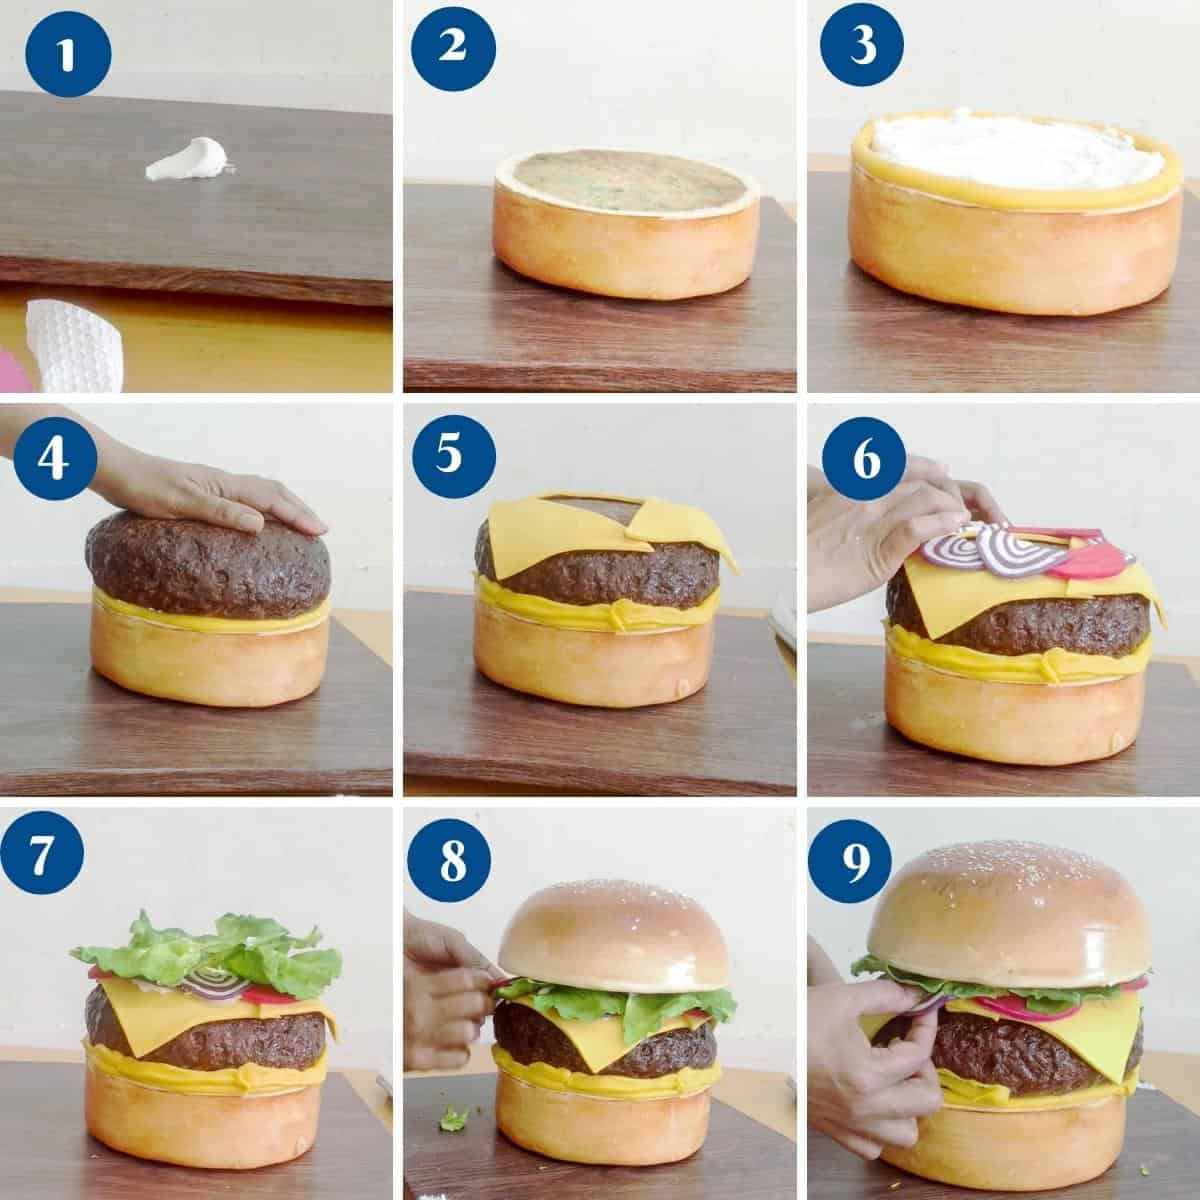 Progress pictures - assembling the hamburger cake on the cake board.